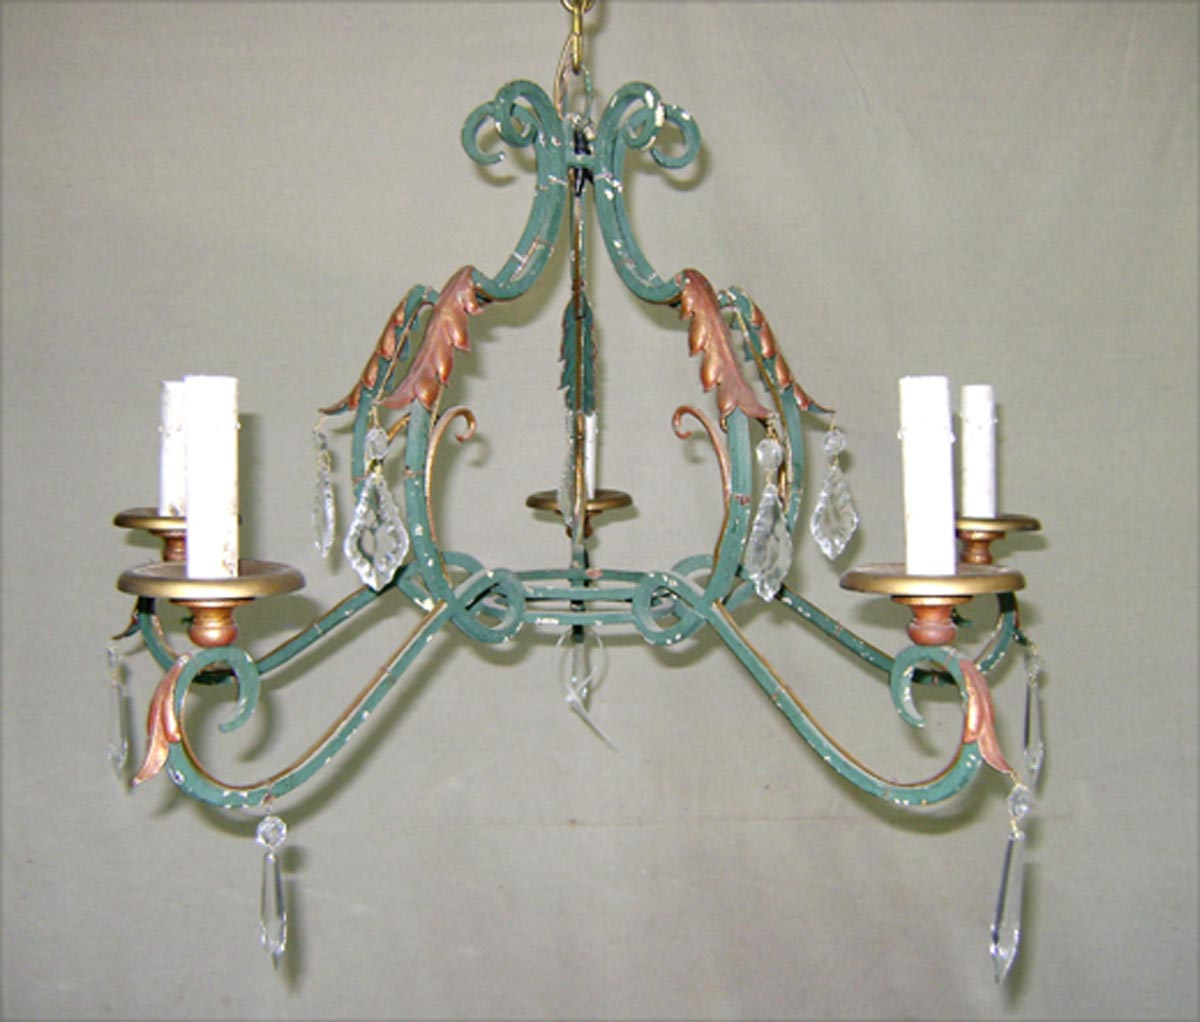 French Painted Iron Chandelier w/Crystals